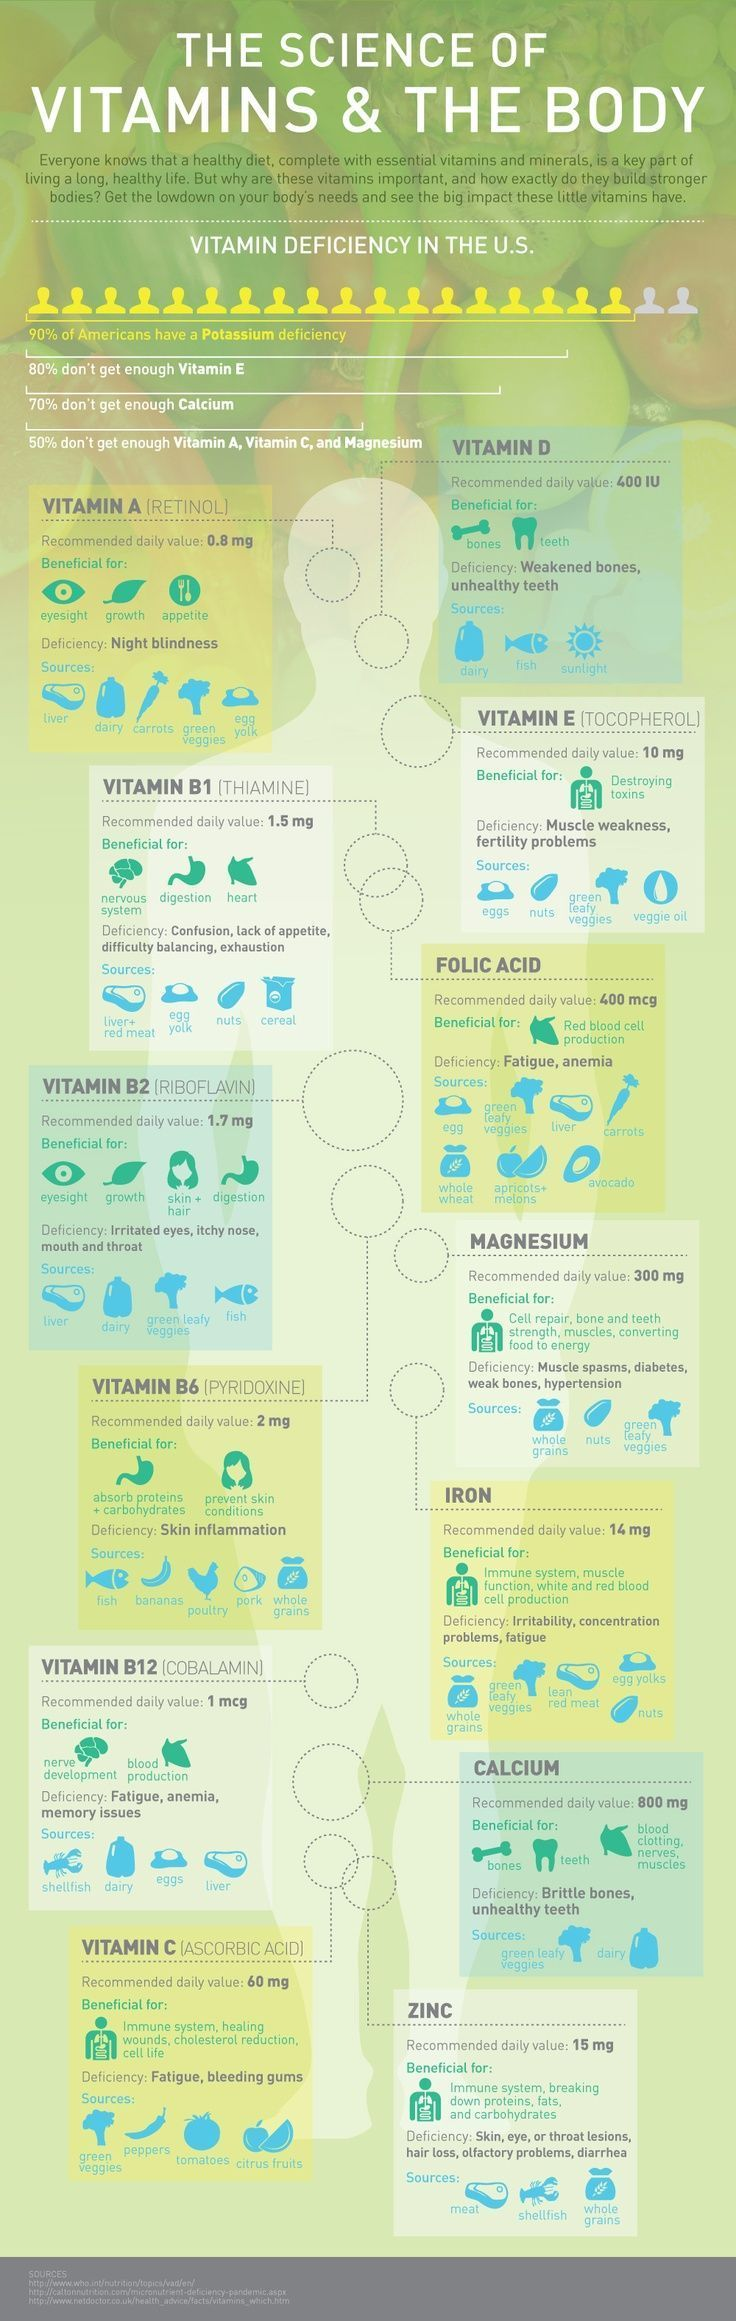 Vitamins and Your Body | Vitamin Deficiency Because it's nice to know